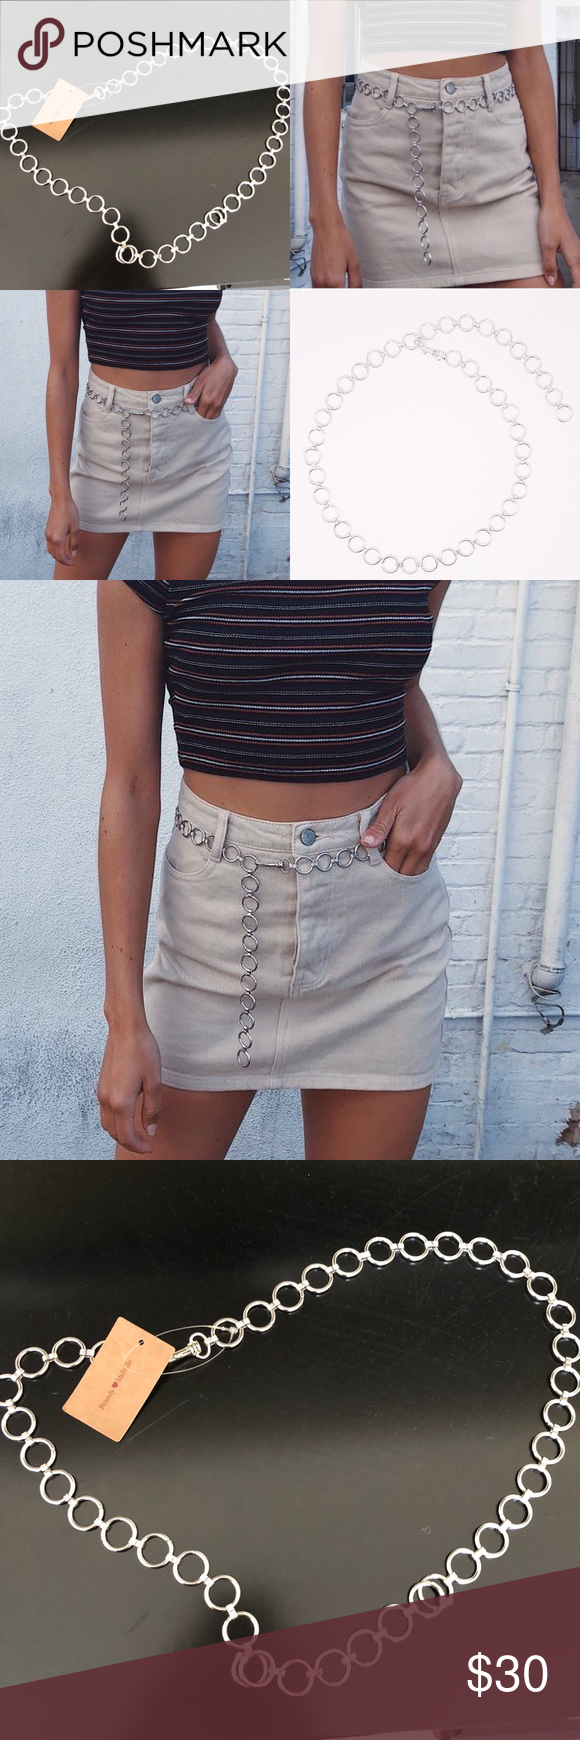 c11592f0b9 Brandy Melville Silver Chain Belt NWT NOT AVAILABLE ONLINE Brandy Melville  Accessories Belts